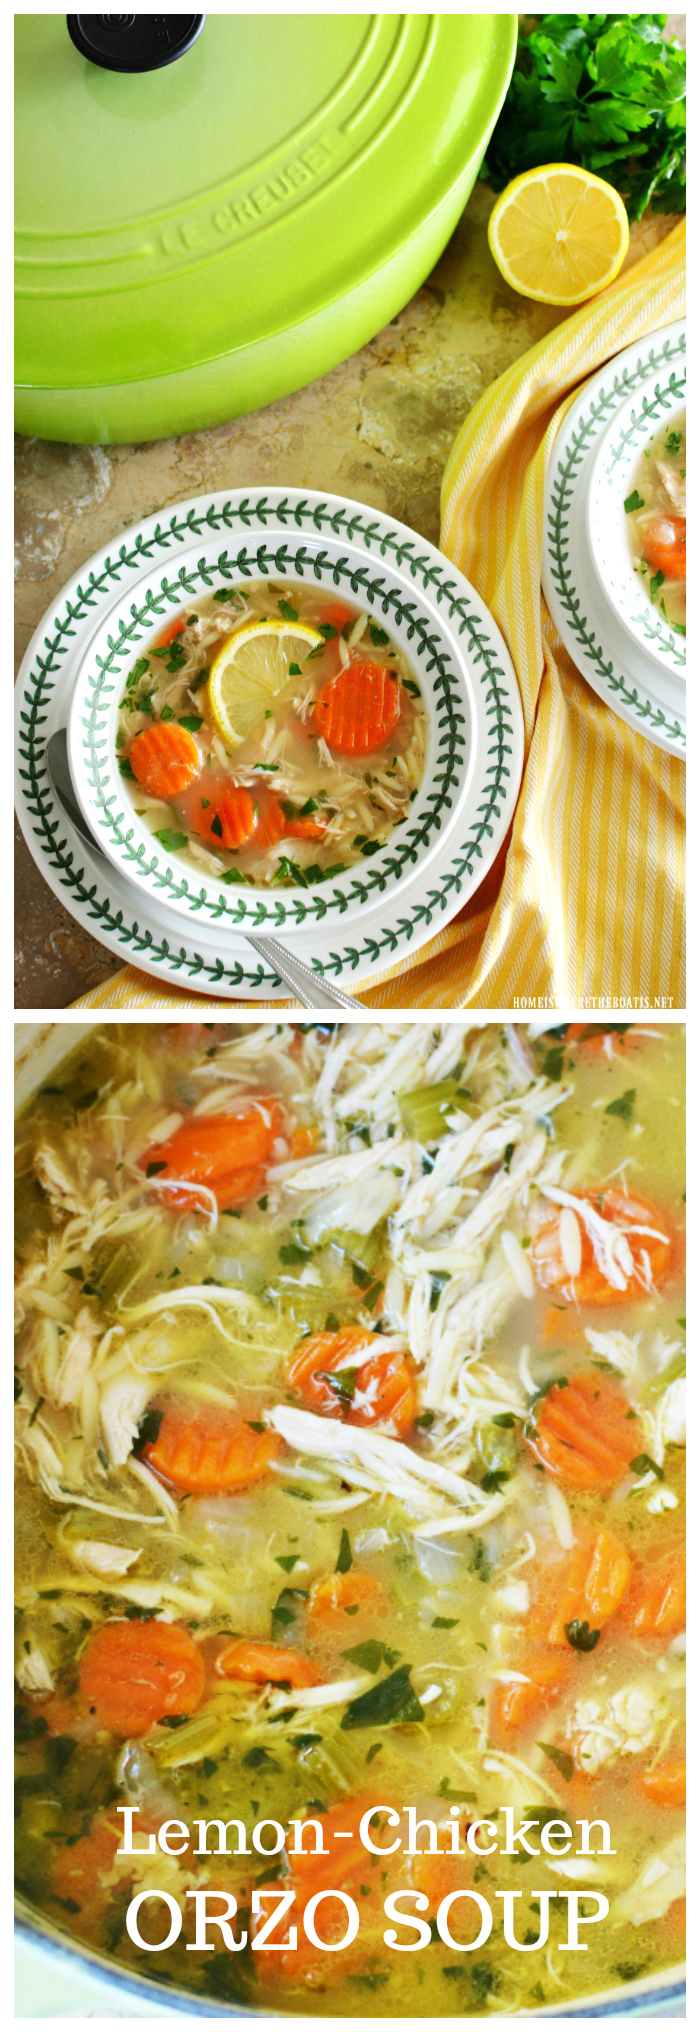 Favorite chicken soup for cold and flu season,Lemon Chicken Orzo Soup! | ©homeiswheretheboatis.net #recipes #soup #winter